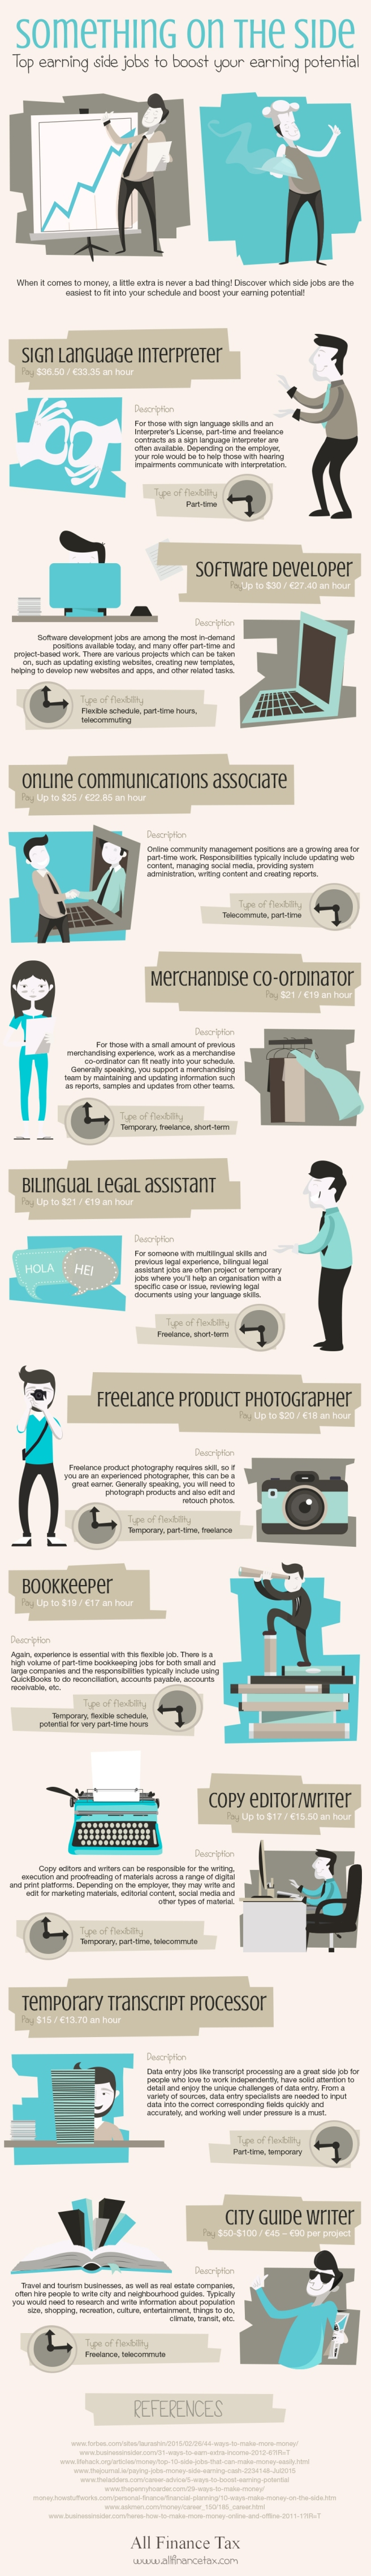 Top Paying Side Jobs Infographic - Take It Personel-ly